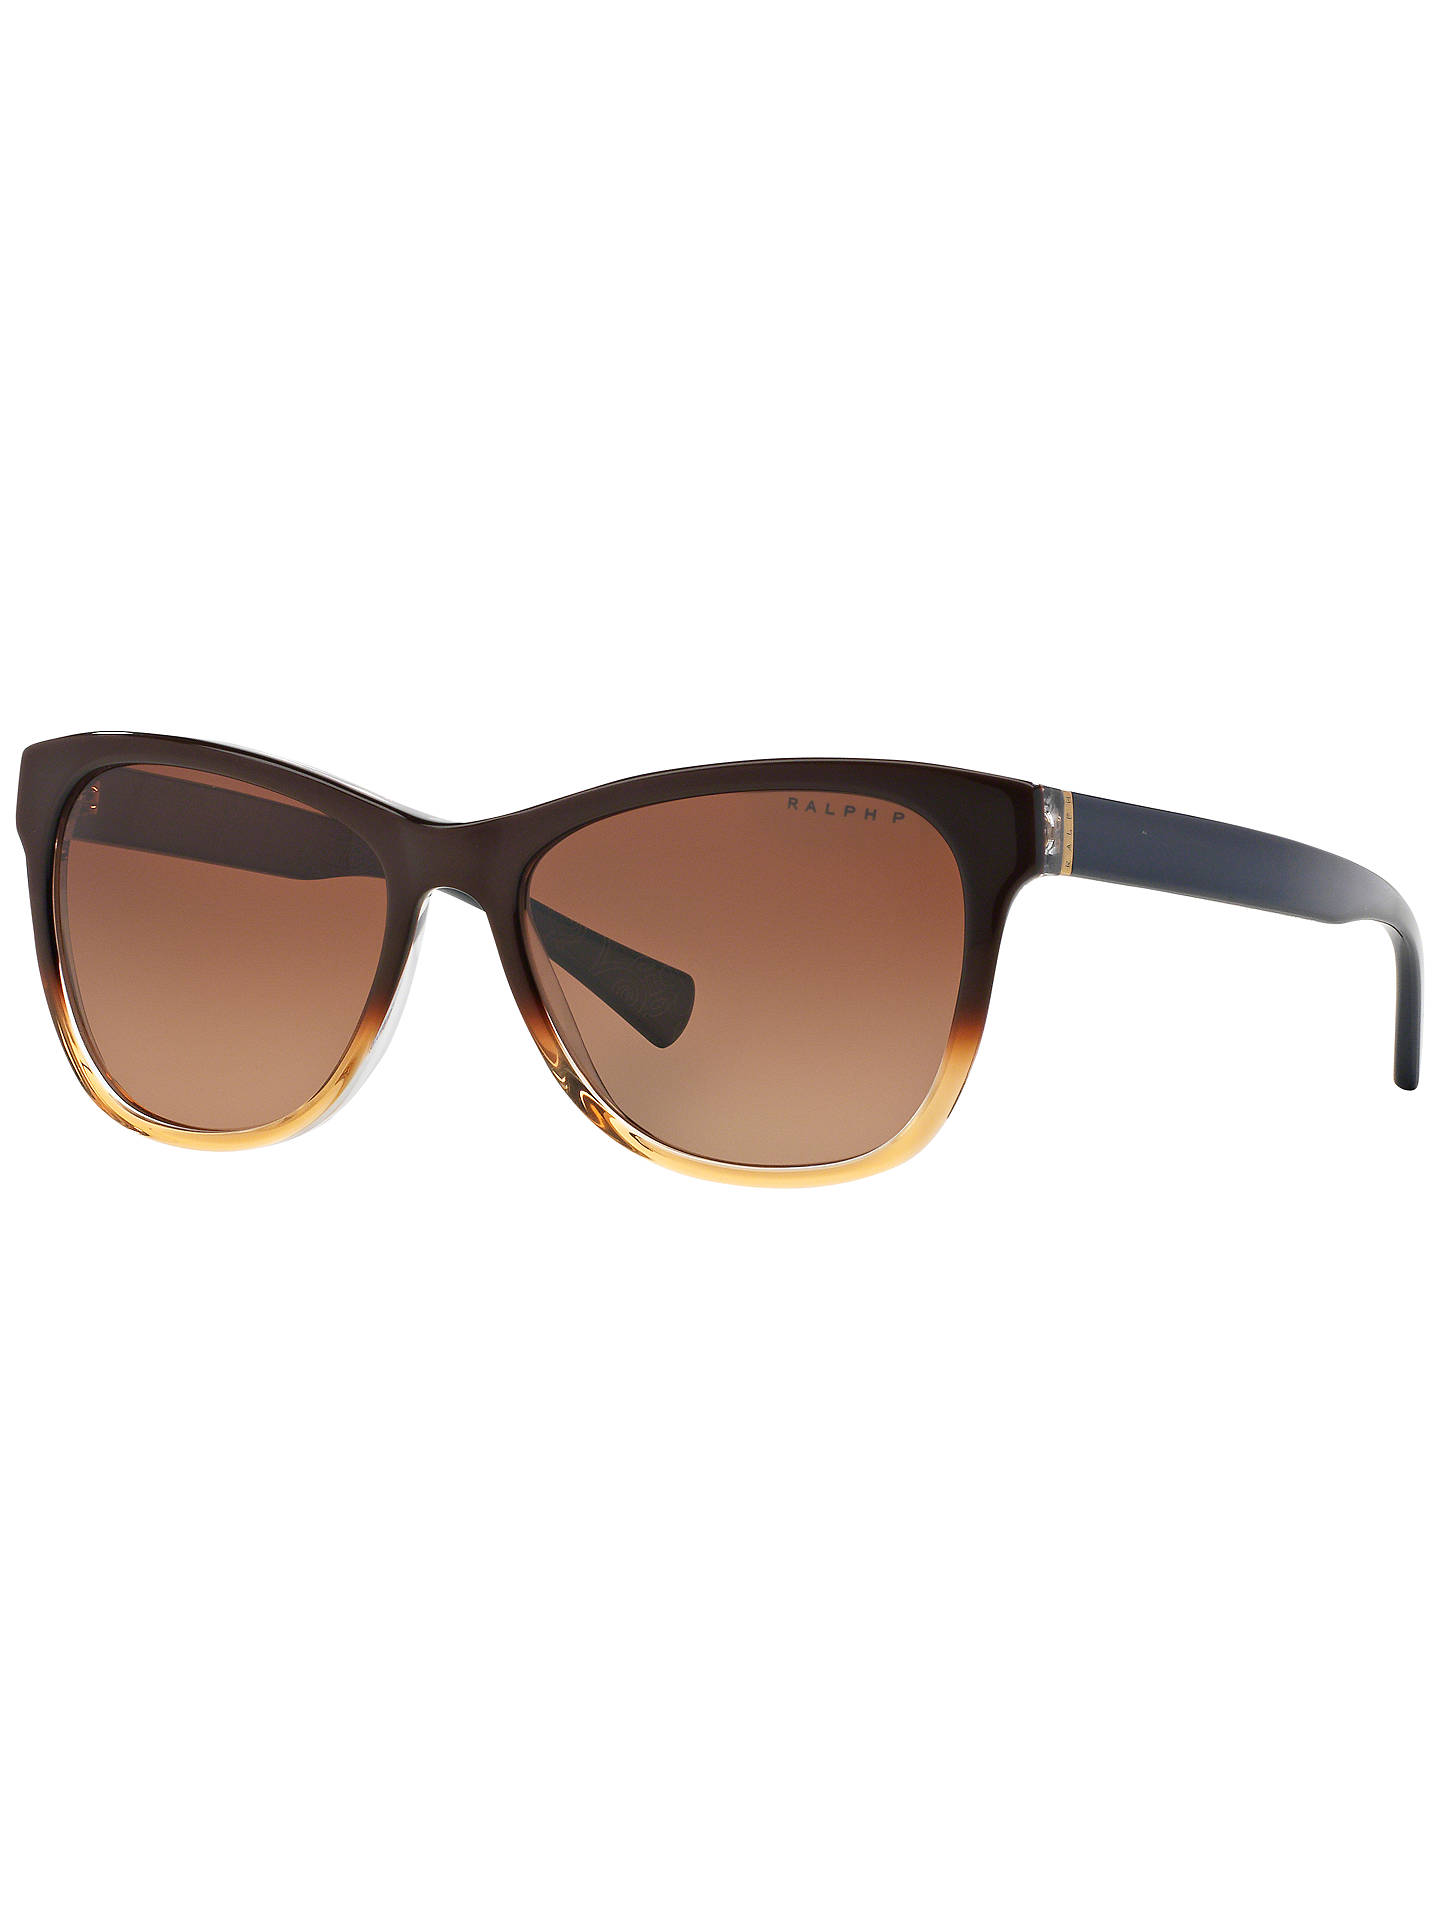 Ralph RA5196 Polarised Square Framed Sunglasses at John Lewis & Partners